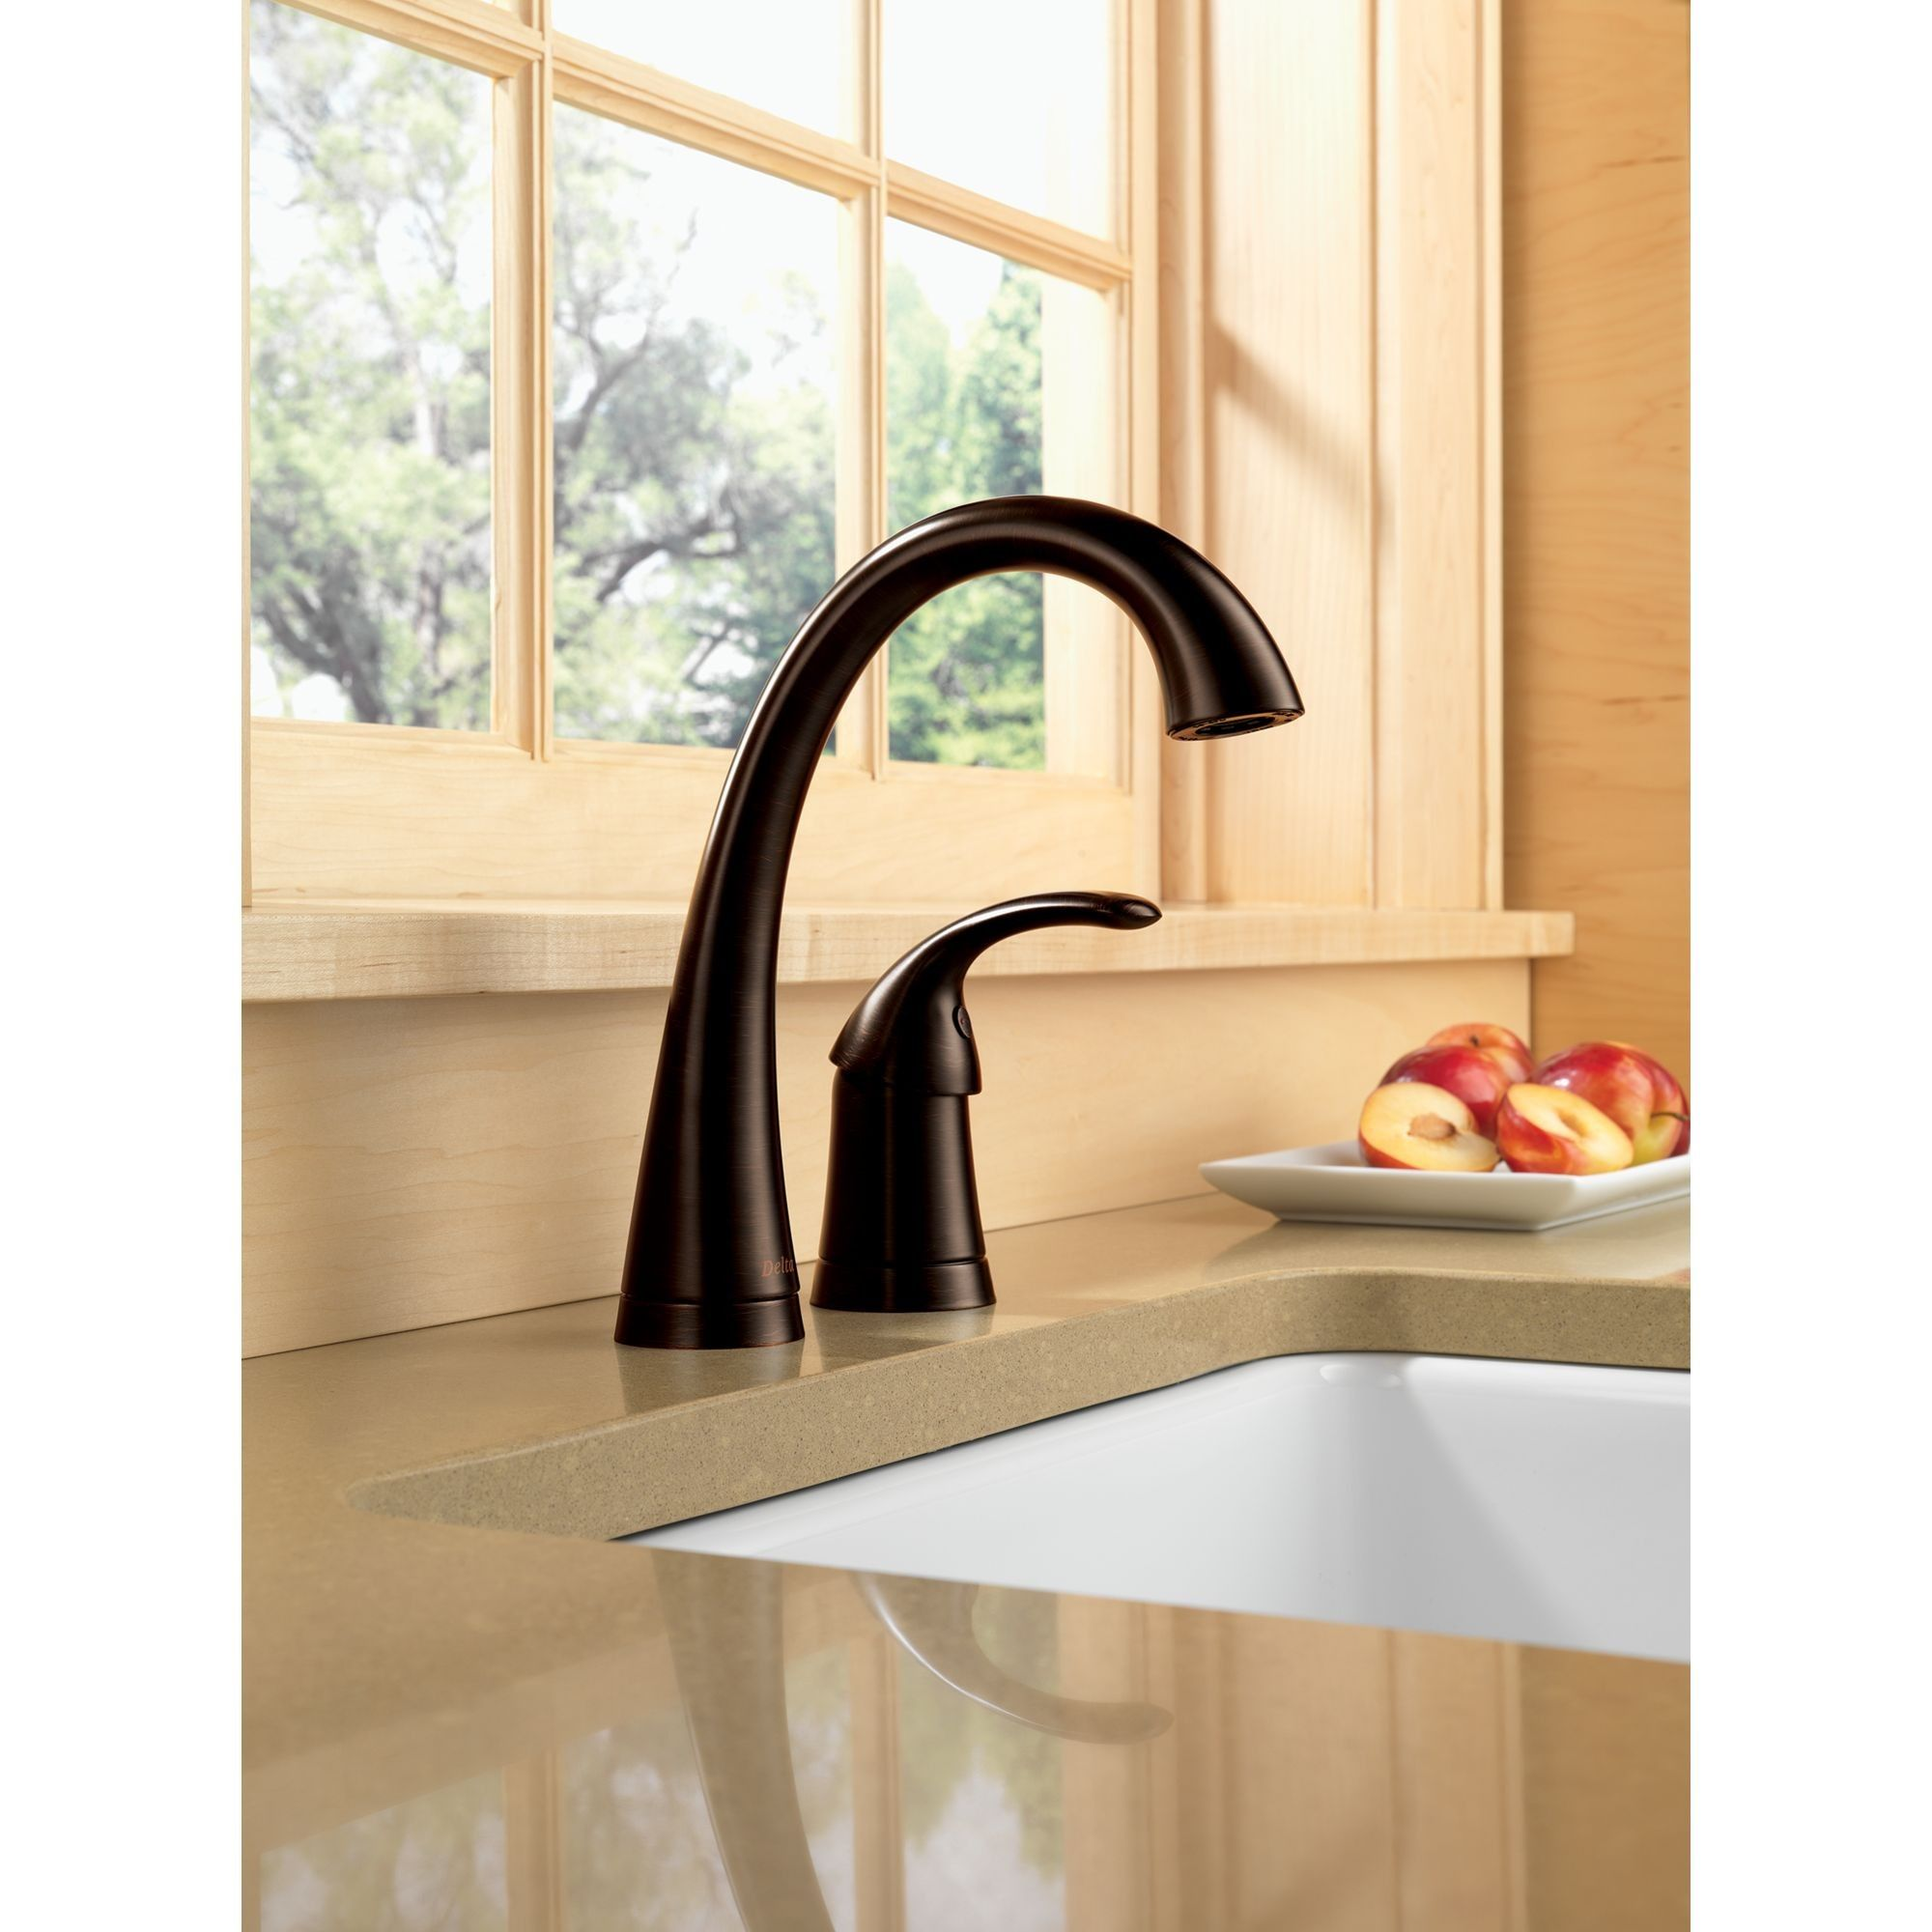 beverage big kitchen transitional rb delta sale faucet index touch luxhome faucets